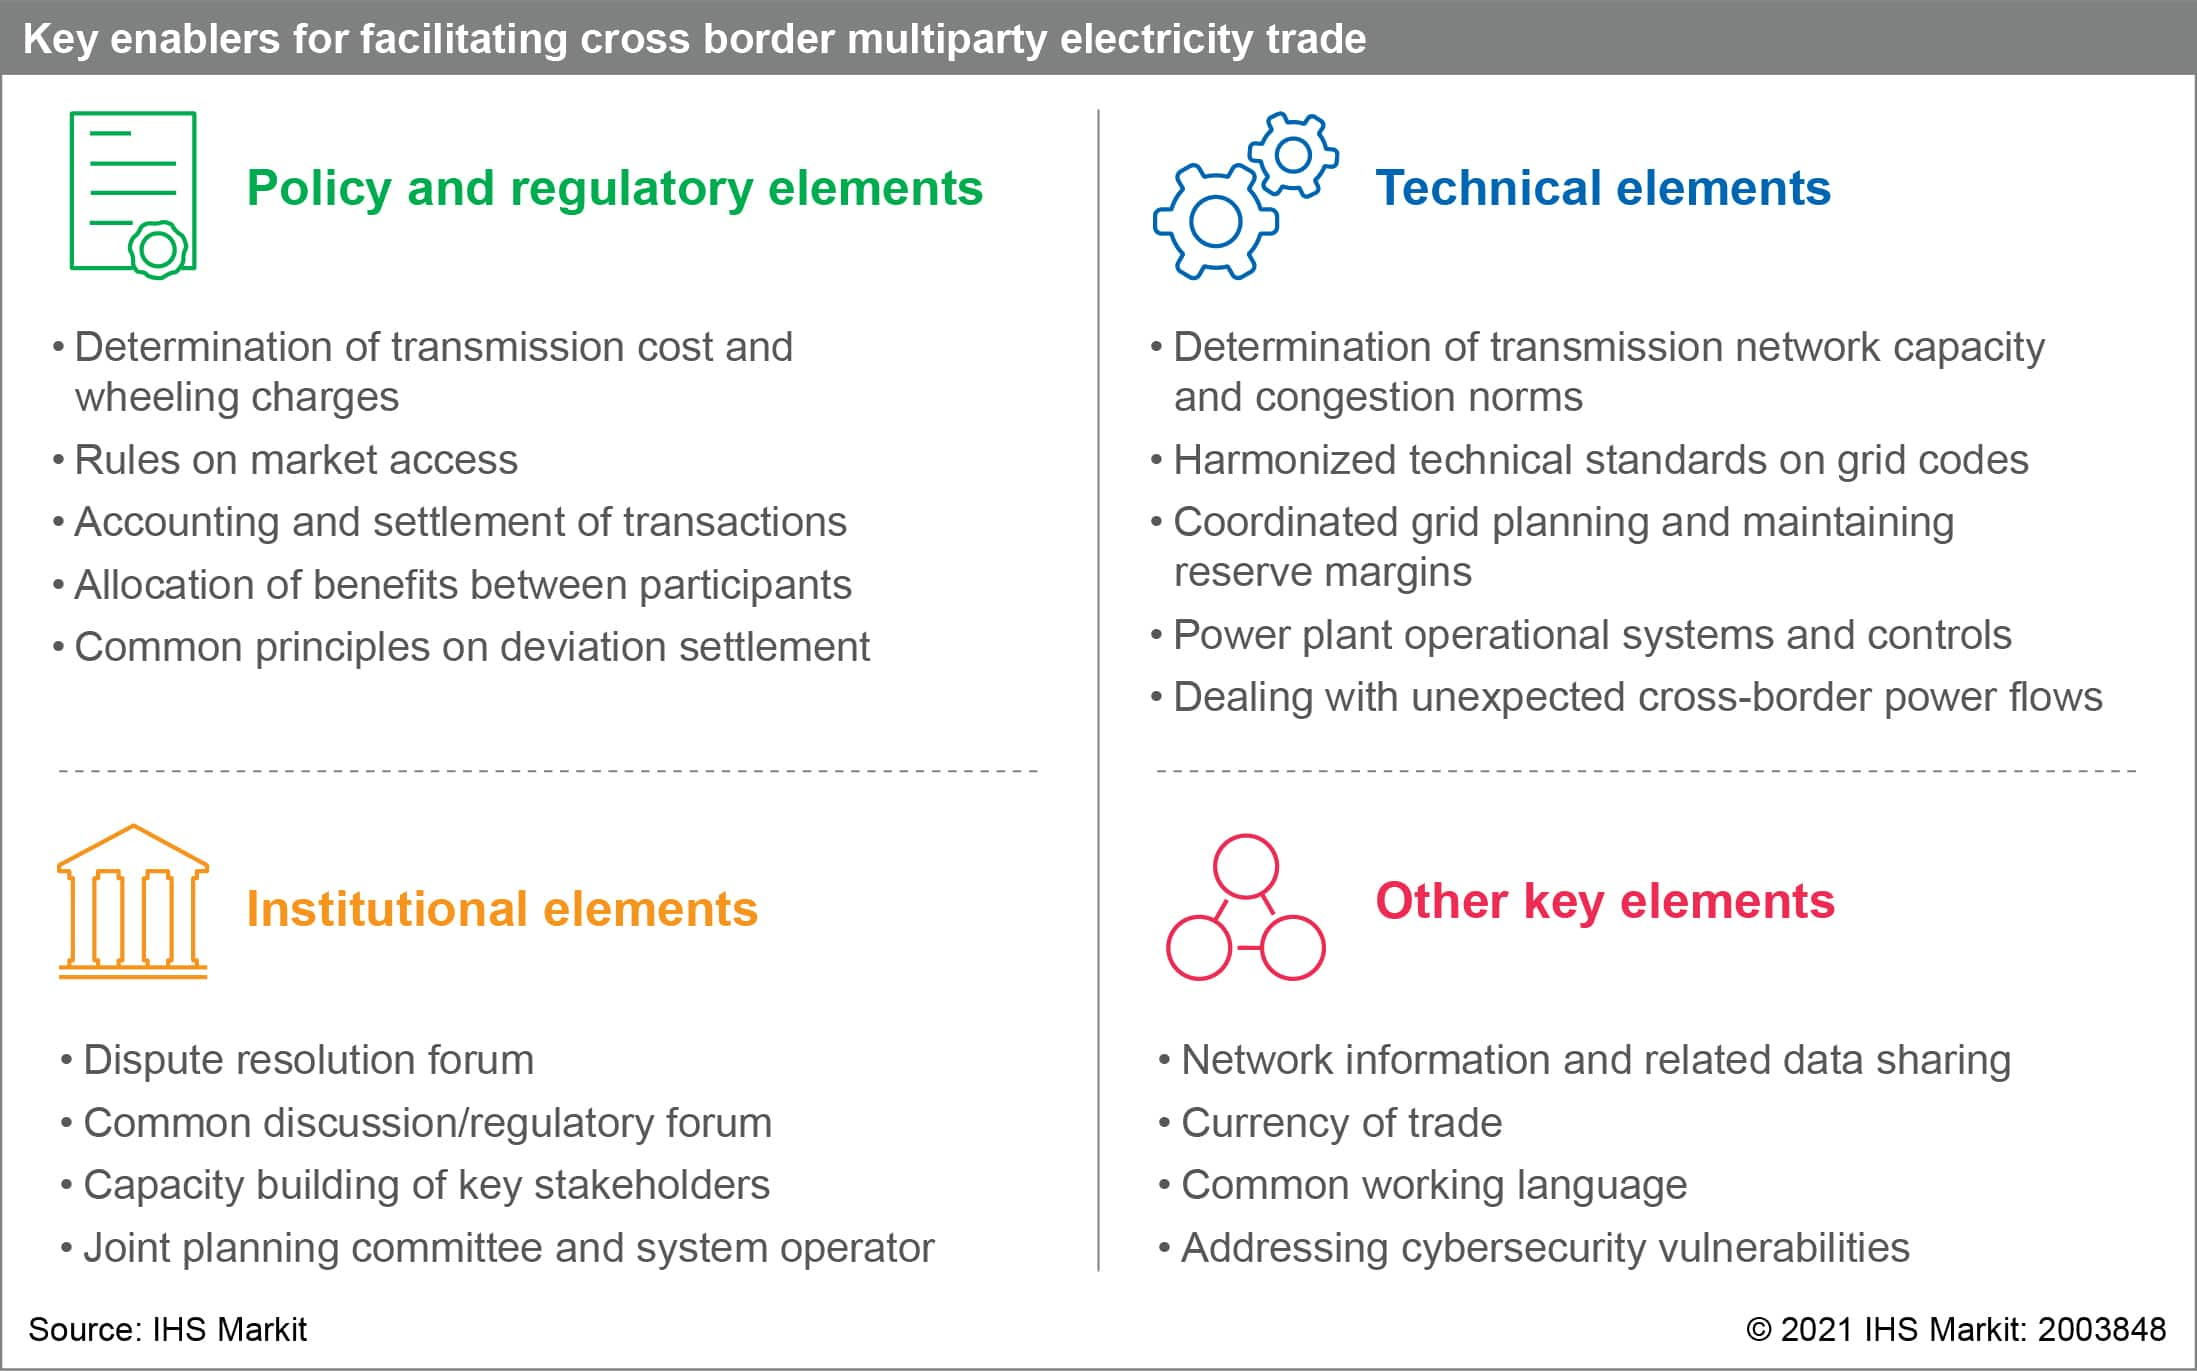 Key enablers for facilitating cross border multiparty electricity trade